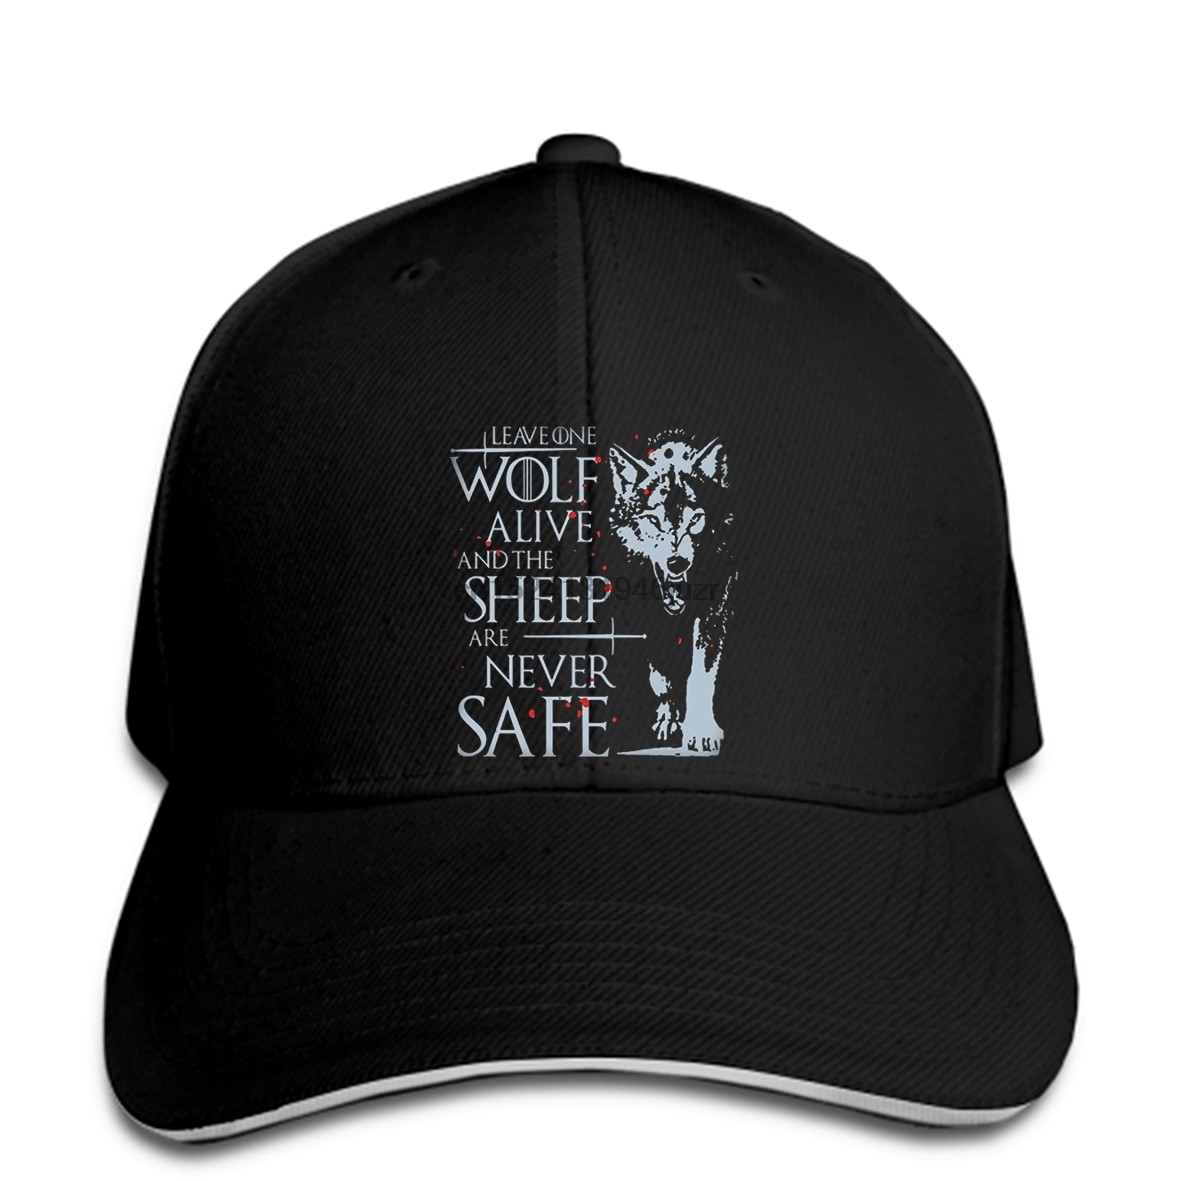 925e4fc7ef0 hip hop Baseball caps Arya Stark cap Game Of Thrones cap Leave One Wolf  Alive Men women Unisex s snapback-in Baseball Caps from Apparel Accessories  on ...